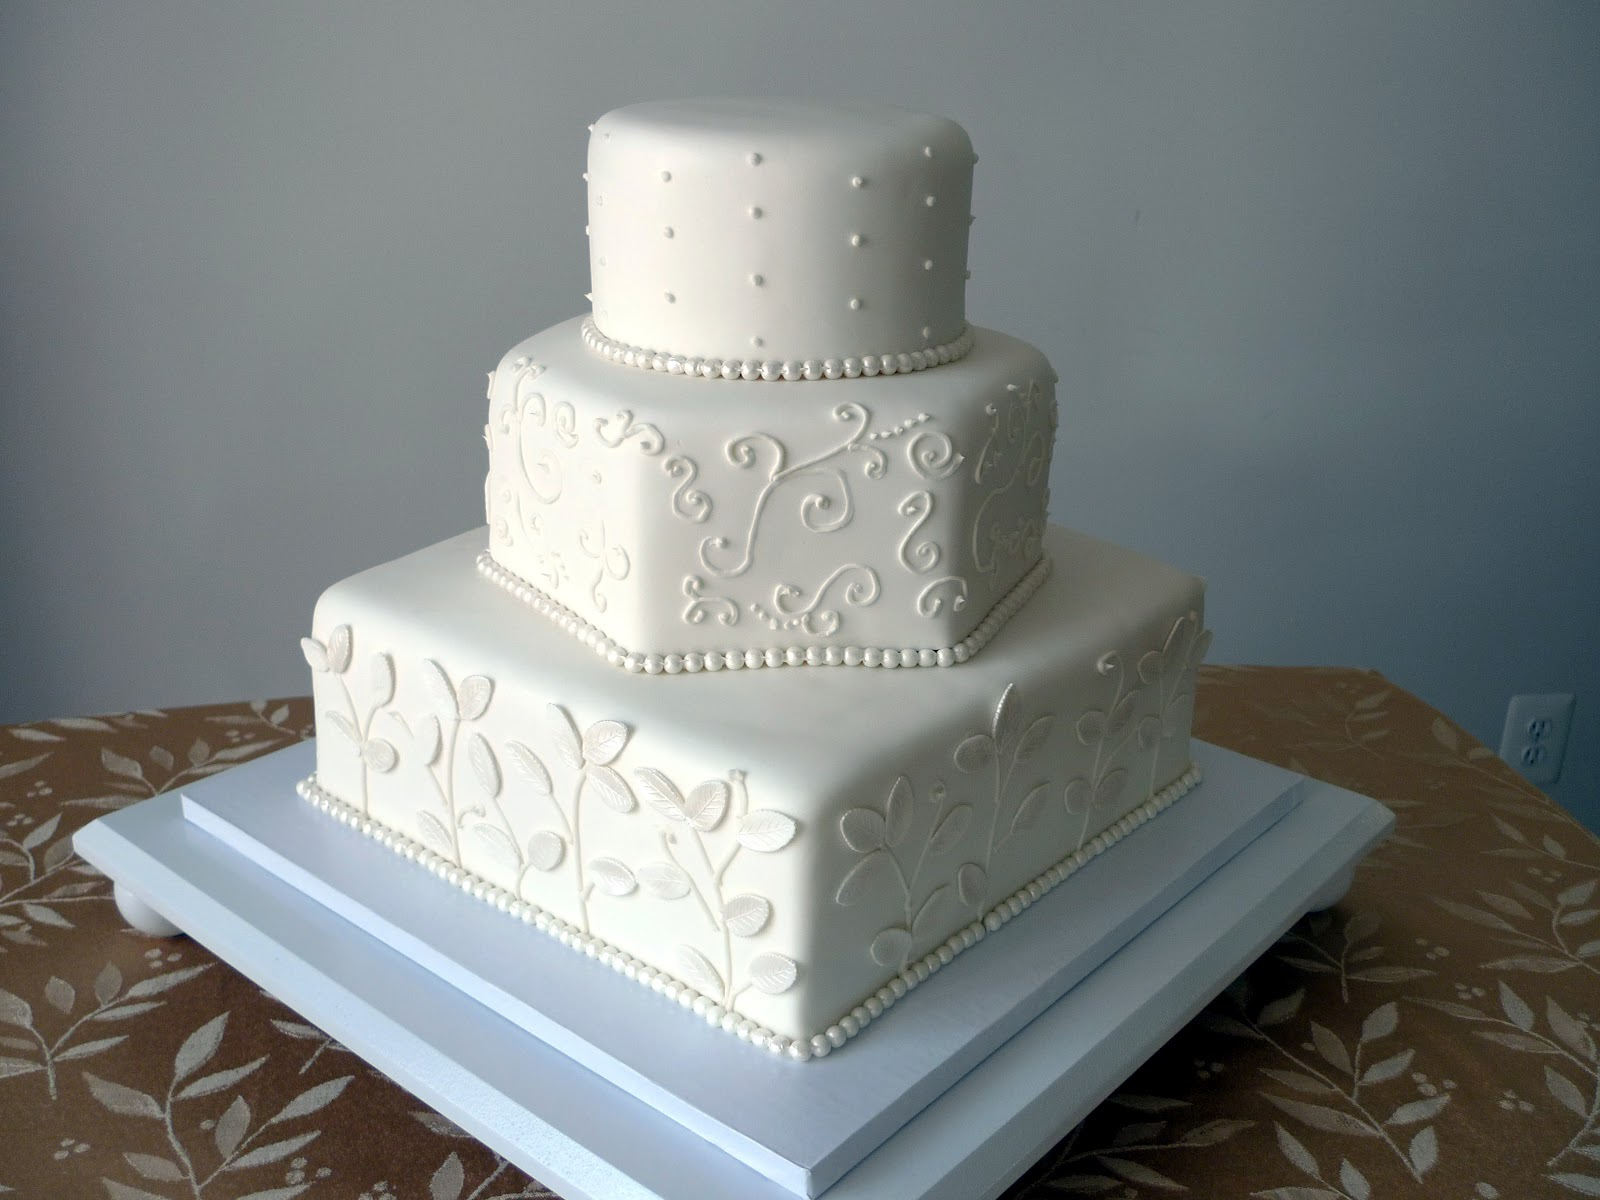 freeze wedding cake wedding cakes images pictures idea wallpapers 14456